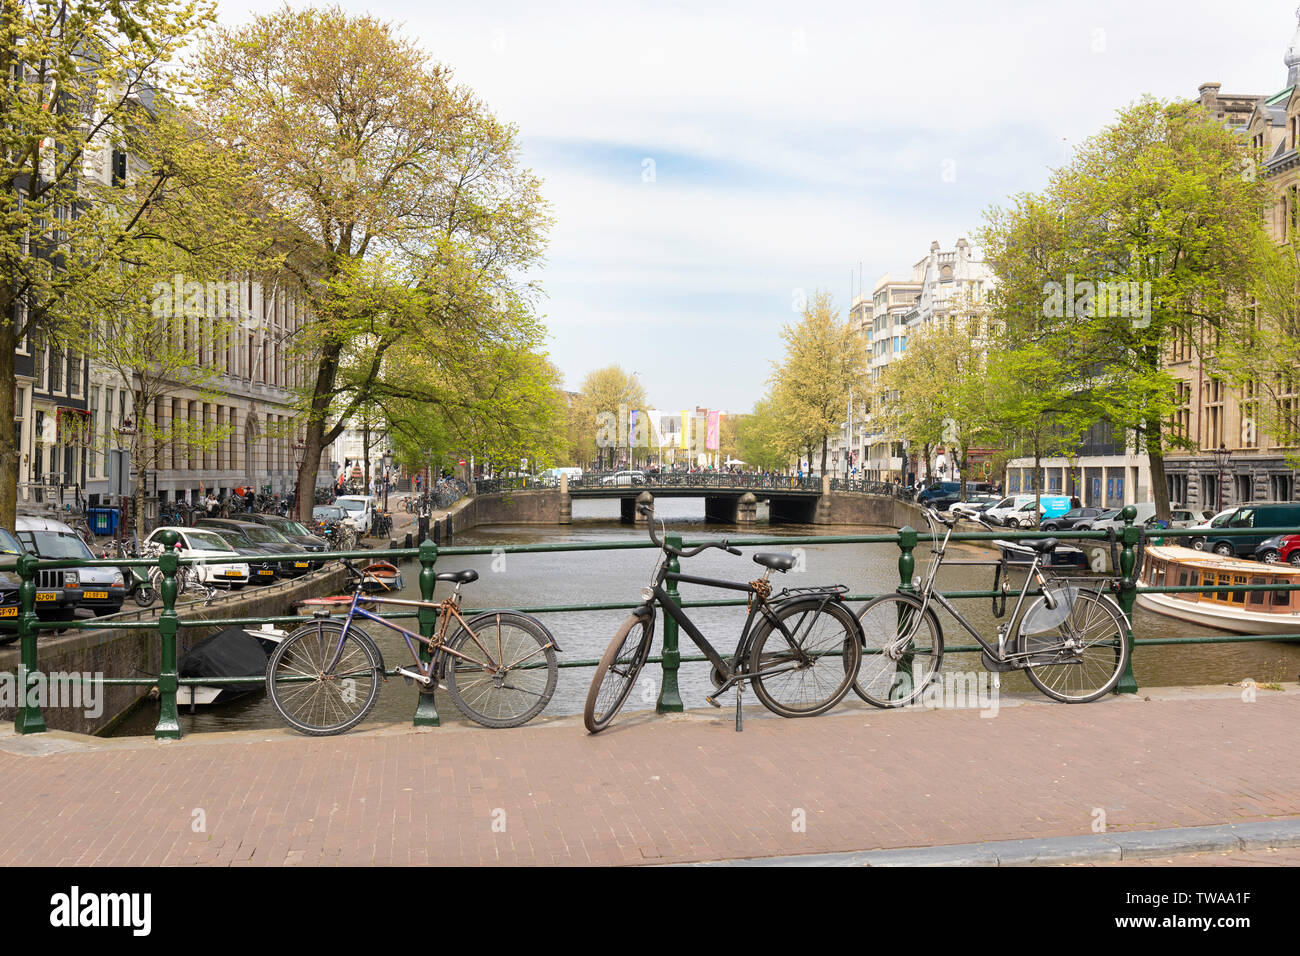 Amsterdam, bicycles chained to bridge railings to prevent theft - Stock Image